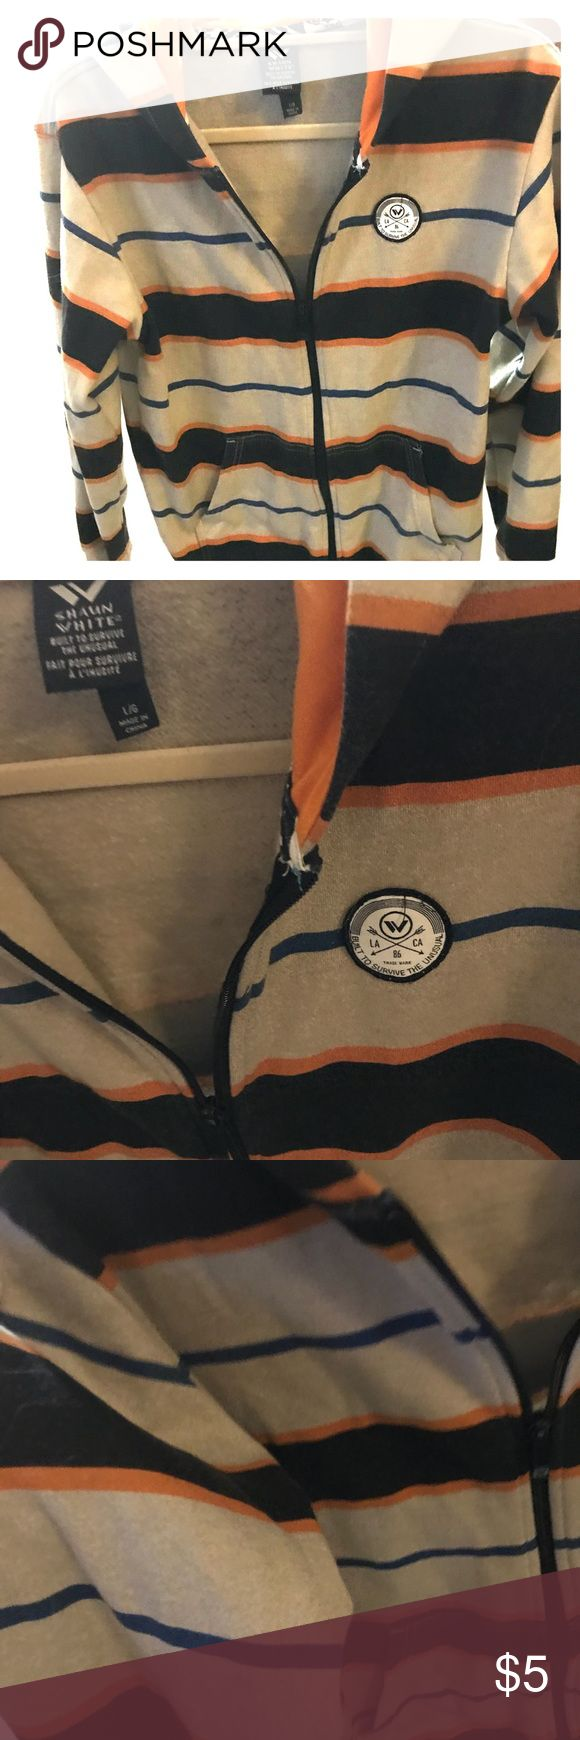 Shaun White Zip-Up Hoodie Size L Striped Pattern Shaun White Neutral Colored and Striped Pattern Zip-Up Hoodie. Fun details like chest patch and custom zipper. Size L Good Condition  Thanks for checking out this item! Don't forget to shop my closet for other fun pieces that you can bundle for extra savings❤️🐱 Shaun White Shirts & Tops Sweatshirts & Hoodies